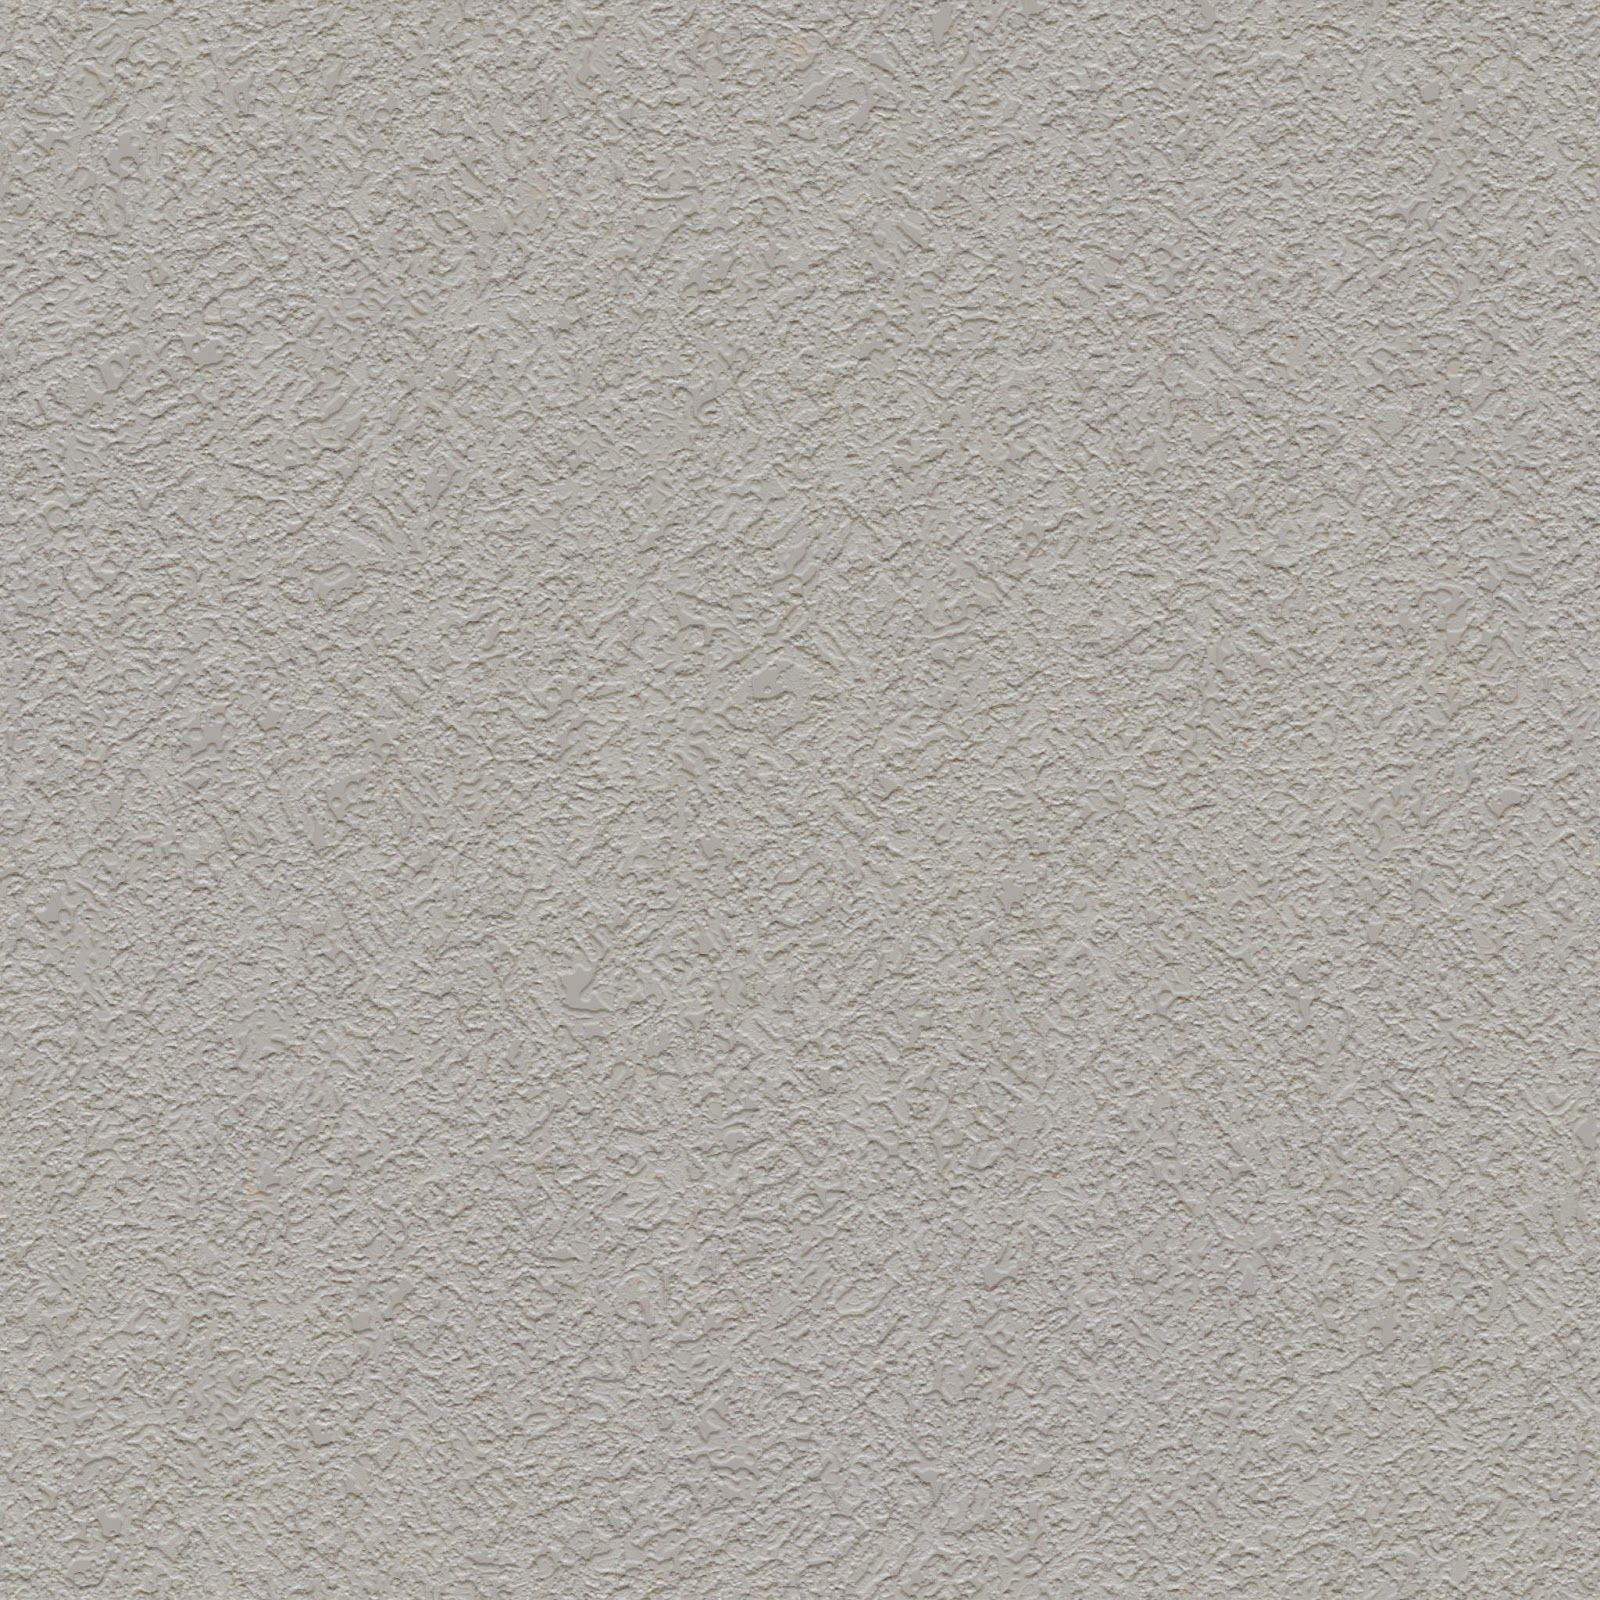 White Paint Texture Seamless White Paint Texture Seamless